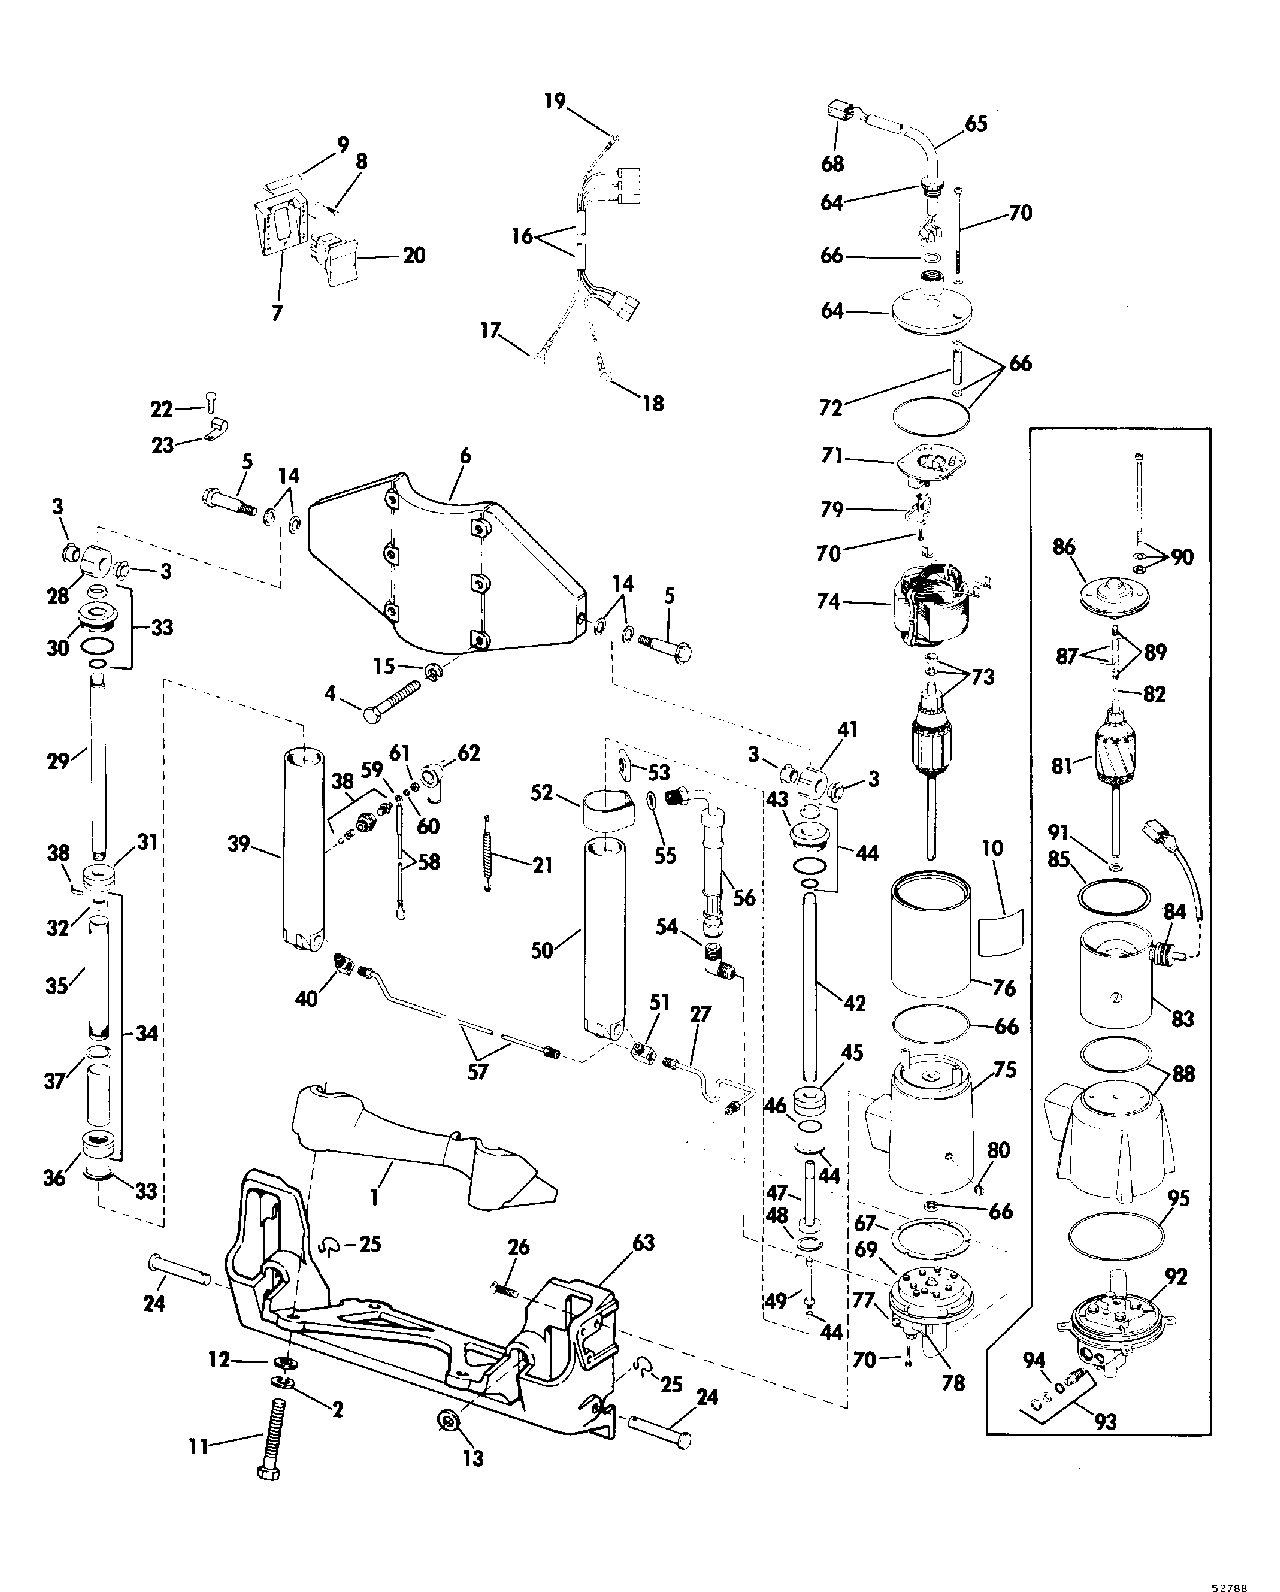 1993 Evinrude 15 Hp Wiring Diagram : 34 Wiring Diagram